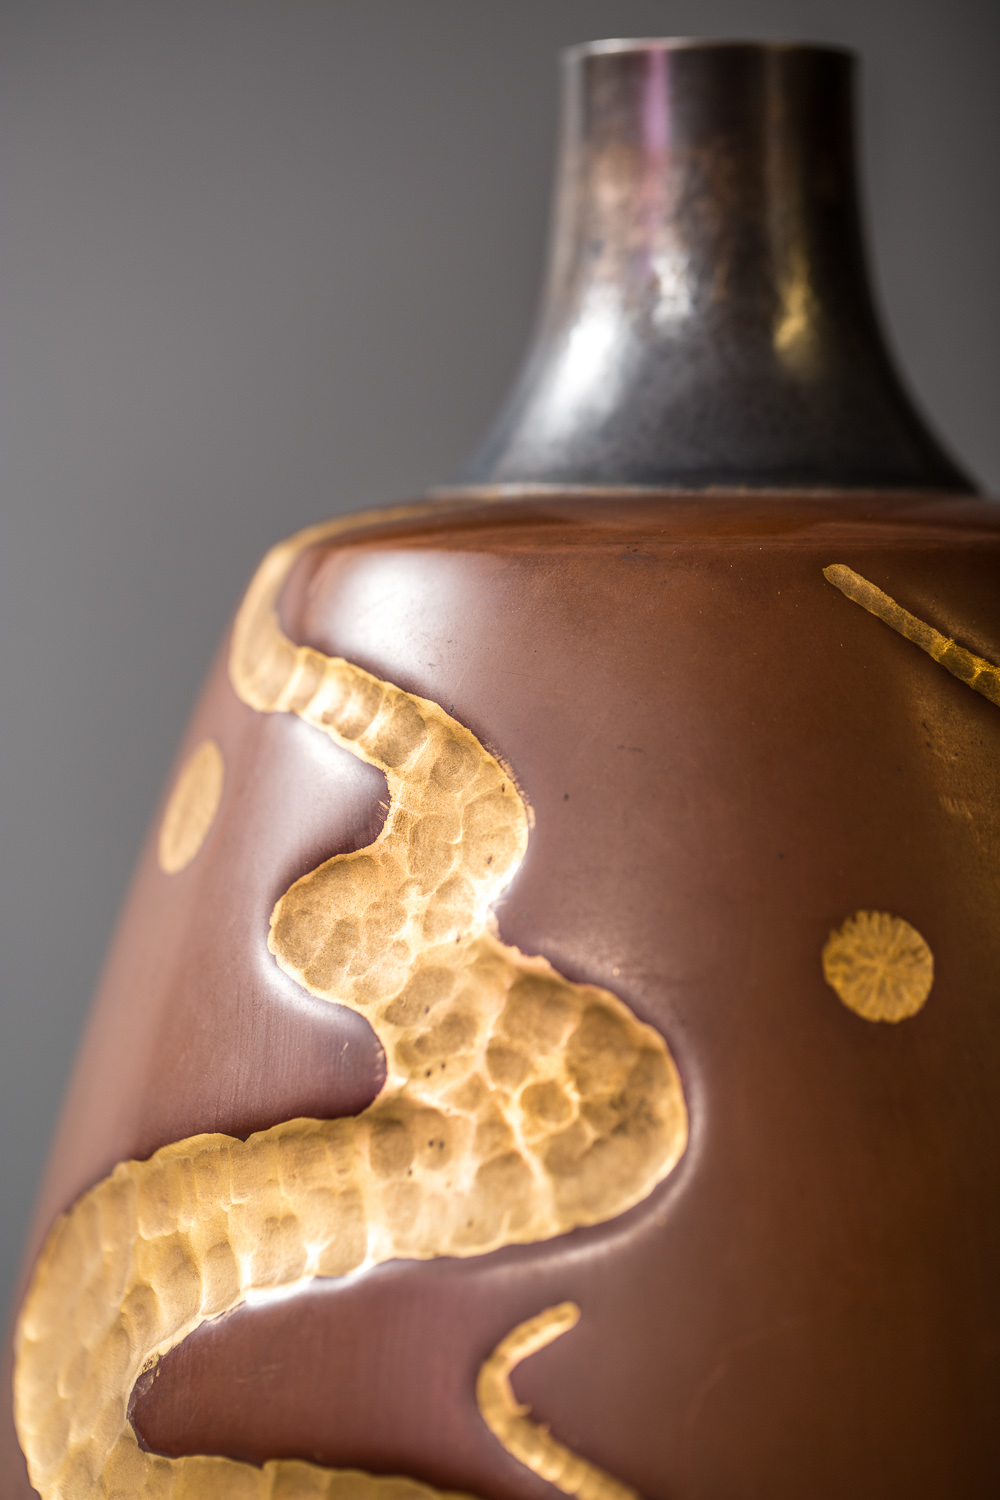 Japanese Modern, Showa Period,  Bronze Vase with Whimsical All-Over Hammered Gold Design